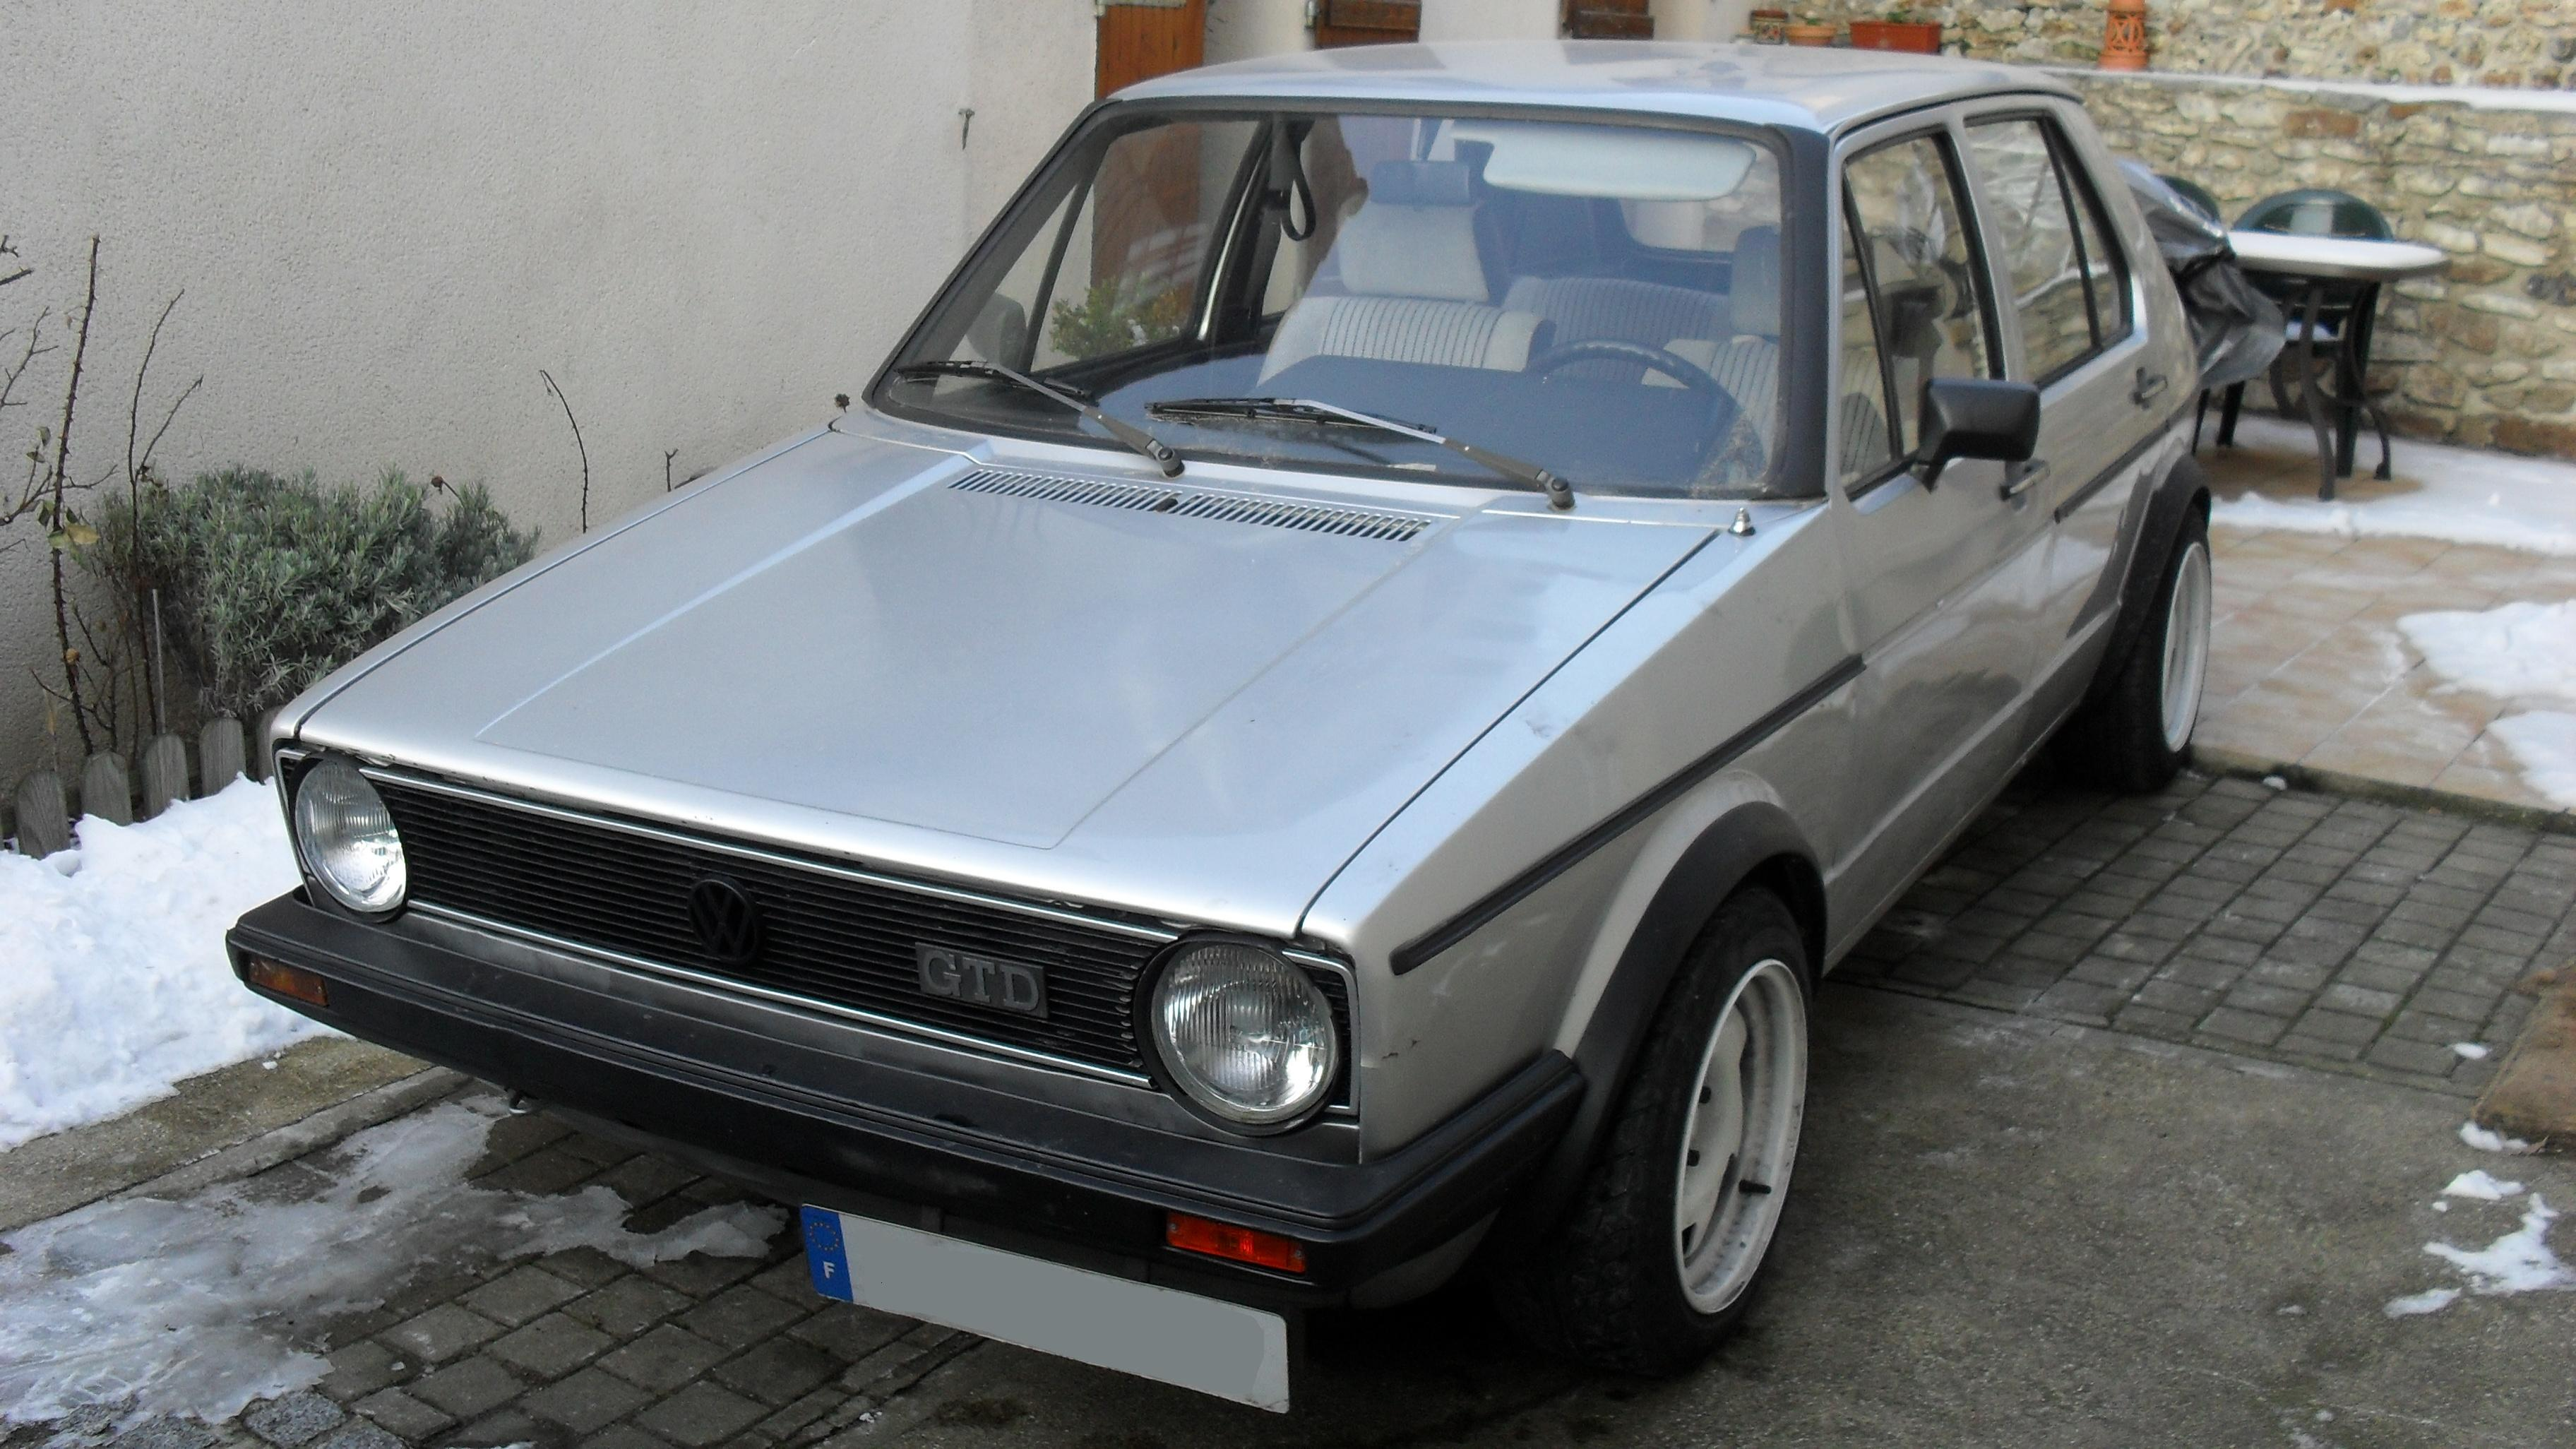 vw golf one 1 6 gtd 1983 de dawazou vendue autres v a g forum volkswagen golf iv. Black Bedroom Furniture Sets. Home Design Ideas